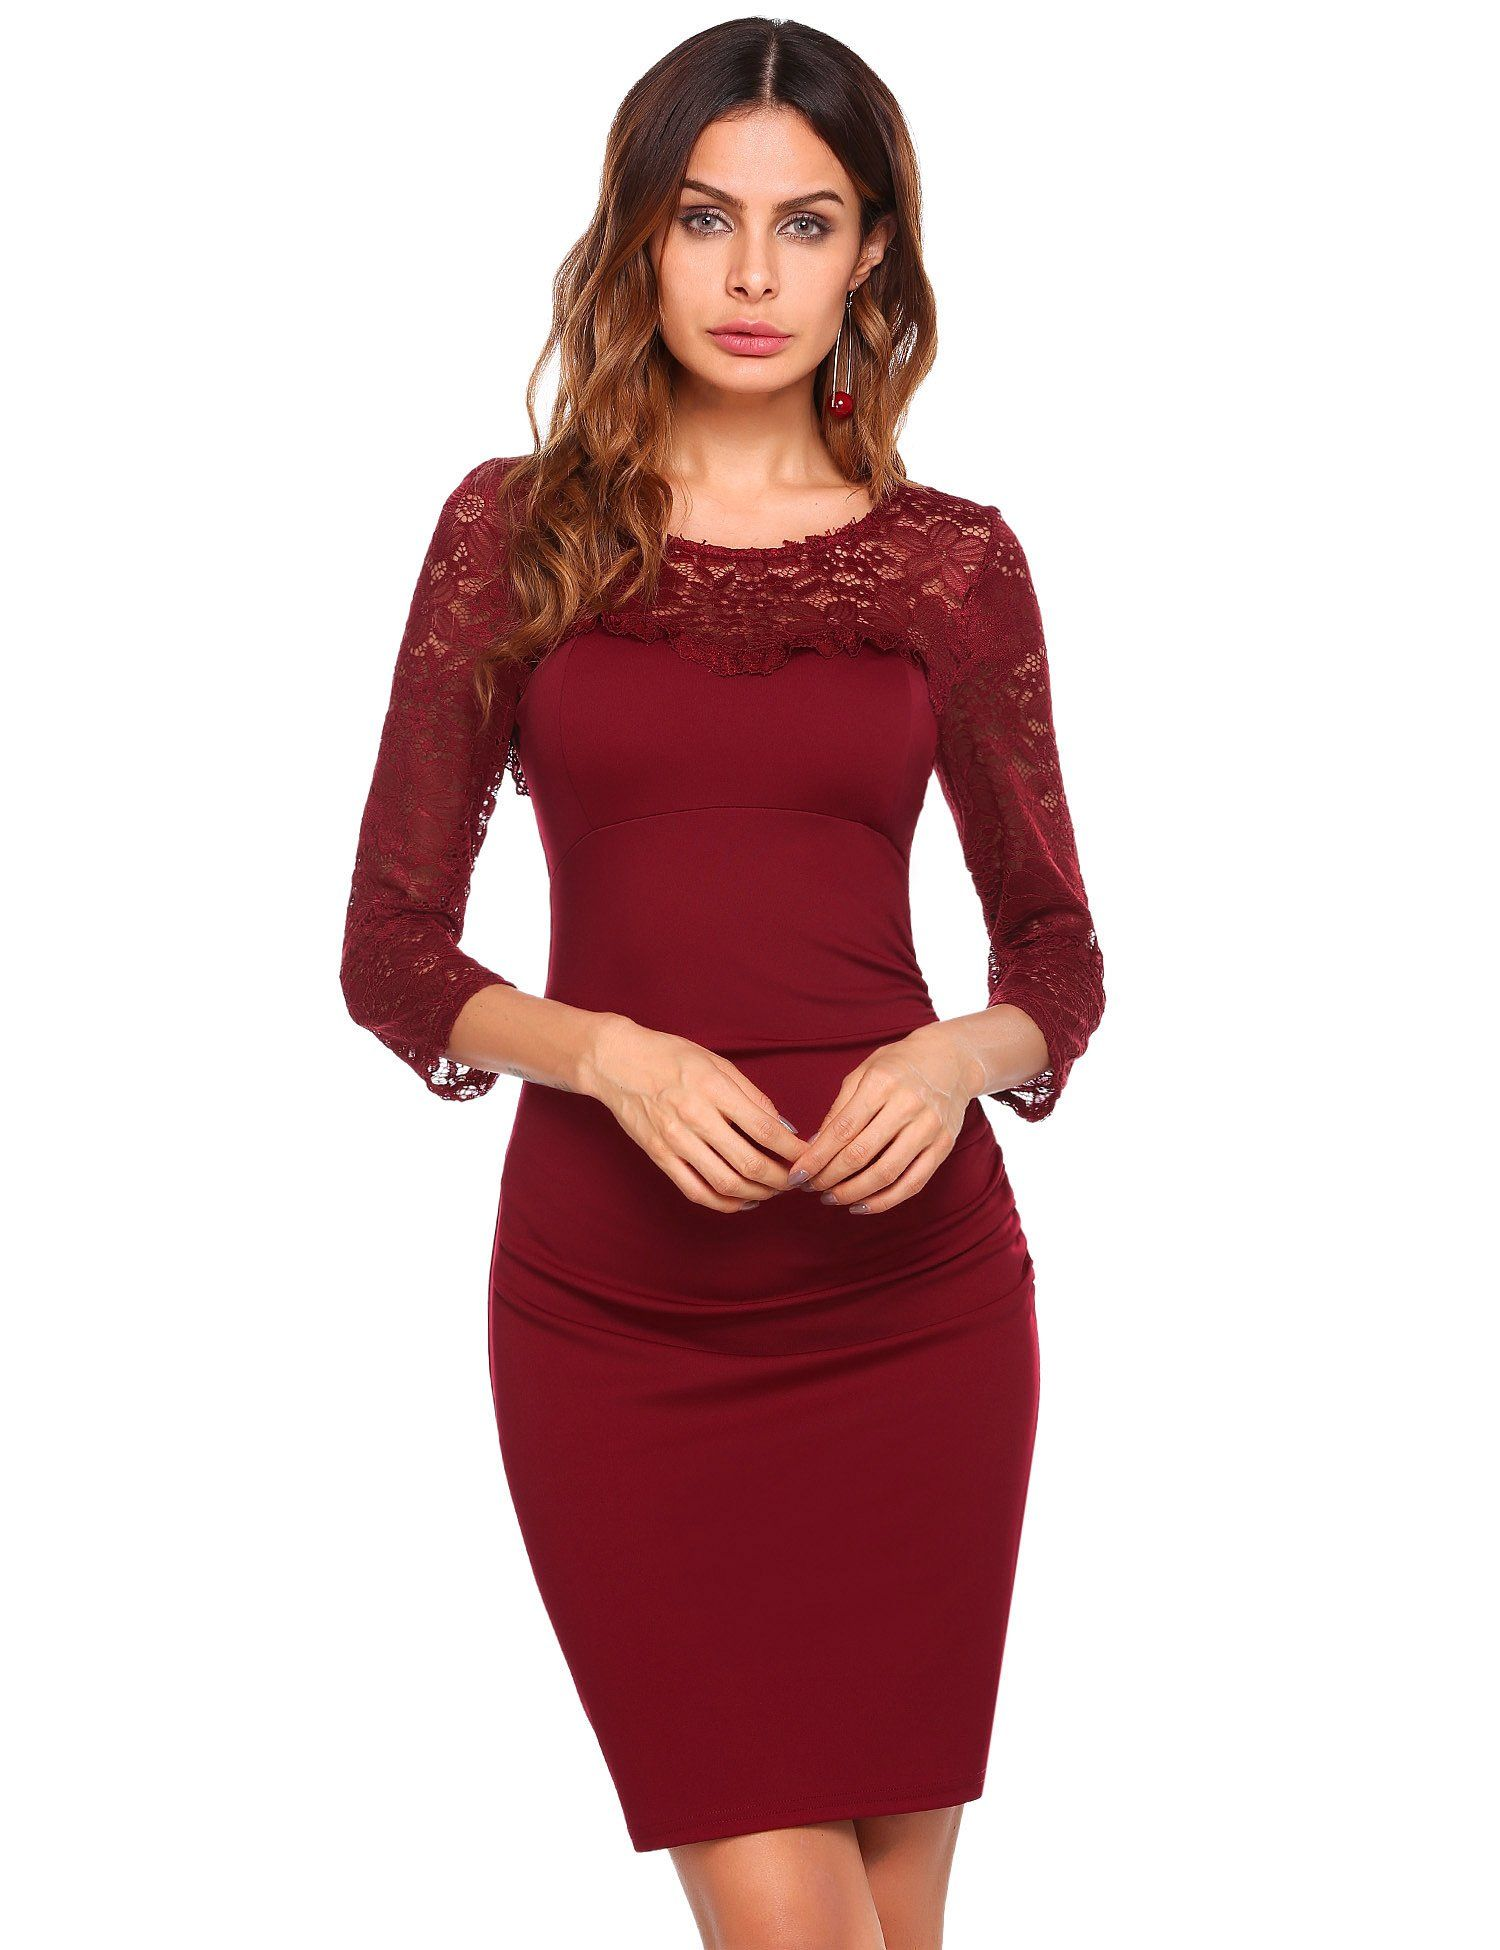 Beyove womens lace dress long sleeve bodycon cocktail party wedding